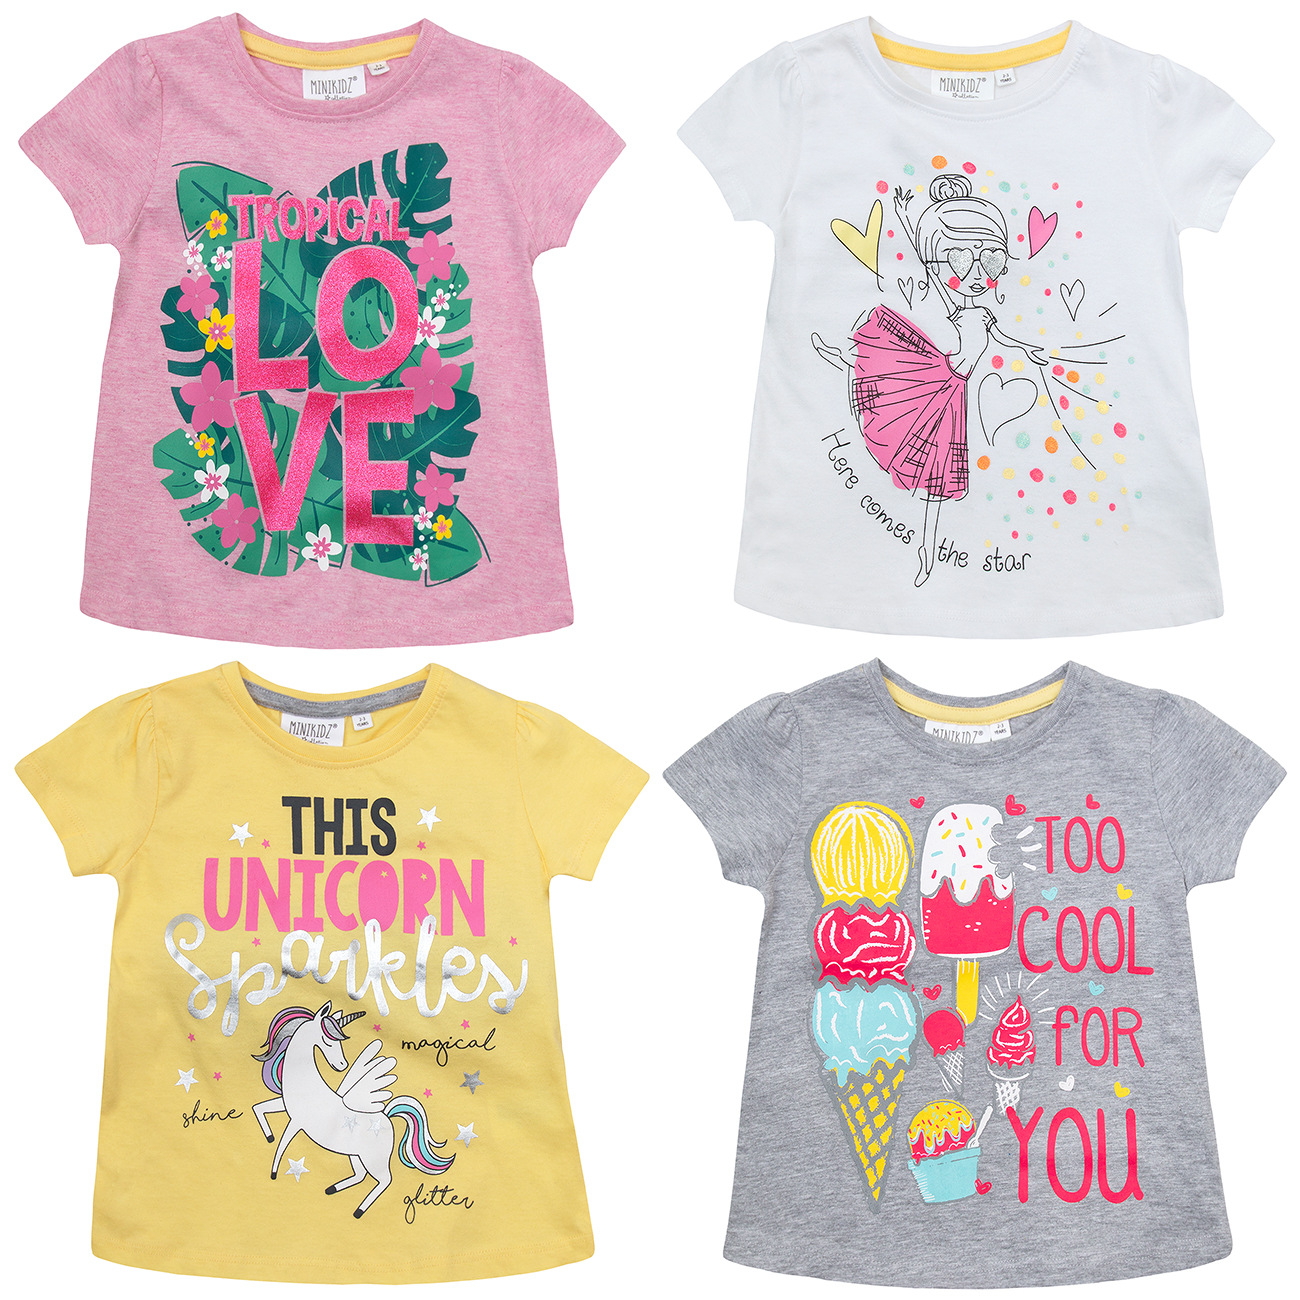 37b4ba4893d MINIKIDZ Infant Girls Printed T-Shirts Cotton Rich Vacation Tops Ages 2 Up  To 6